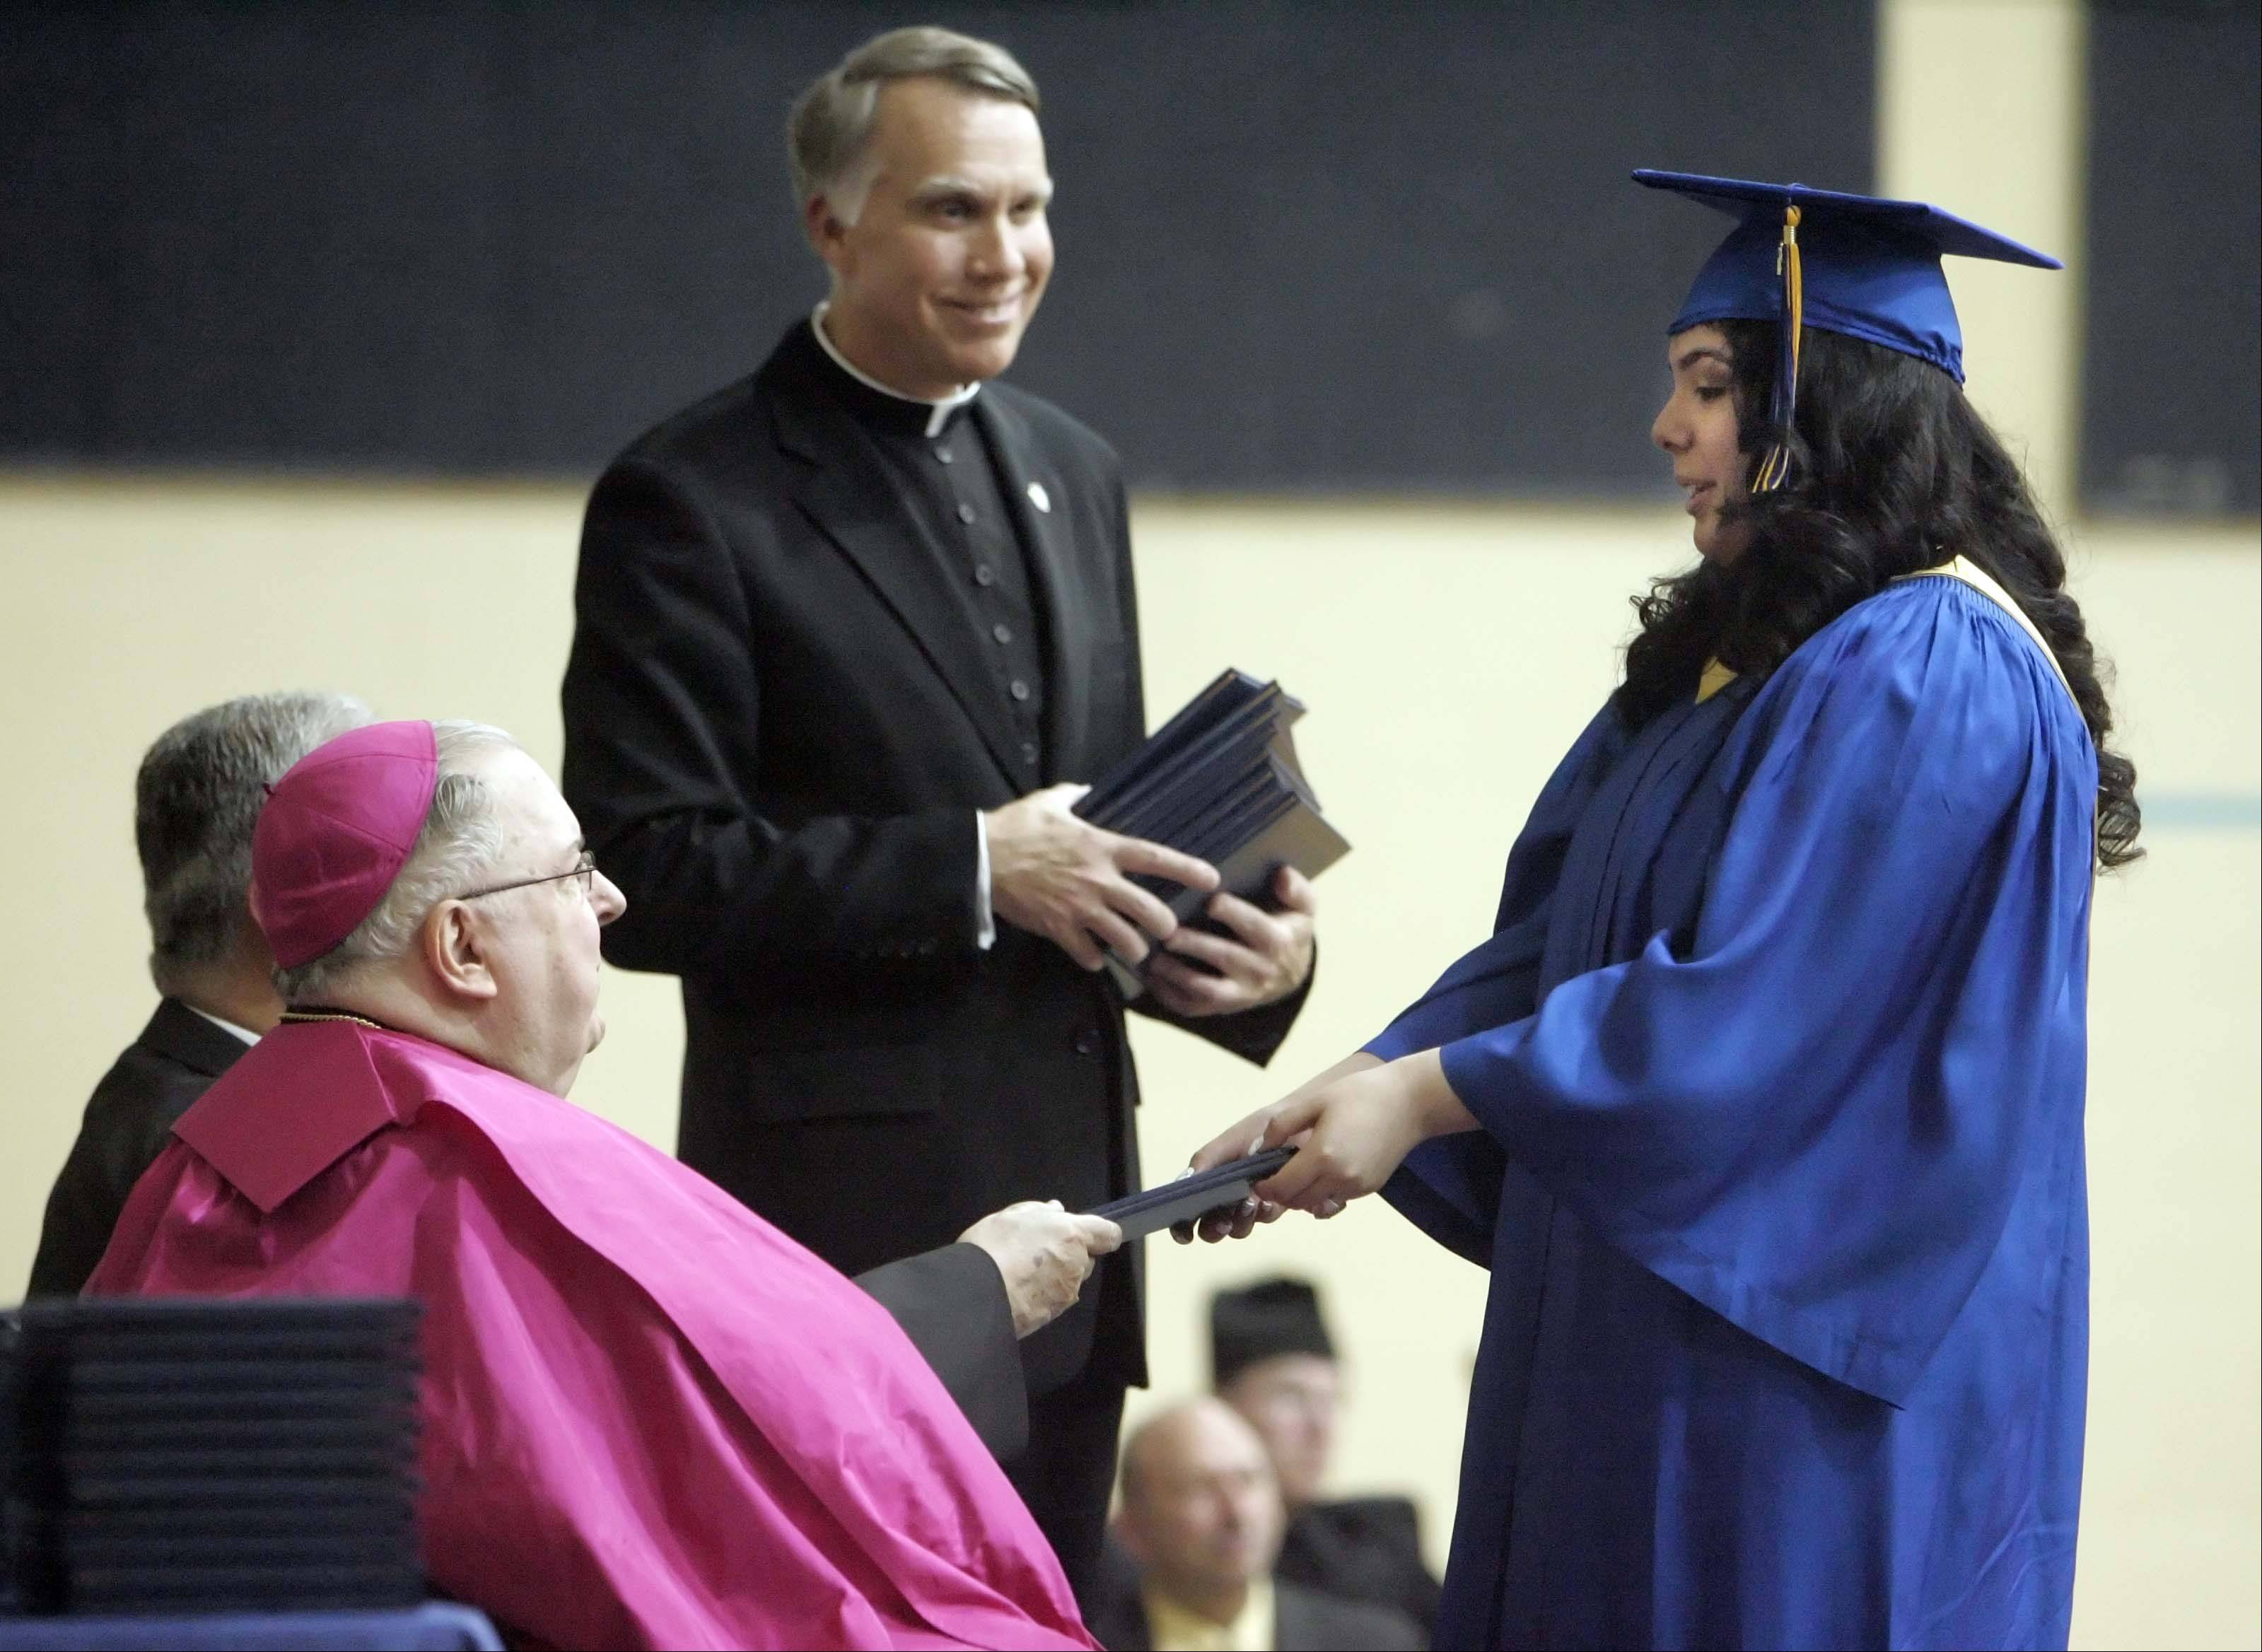 Ariana Aquiniga, receives her diploma from Most Rev. Thomas G. Doran, Bishop of Rockford, seated, during Aurora Central Catholic High School graduation Thursday, May 26, 2011 in Aurora.